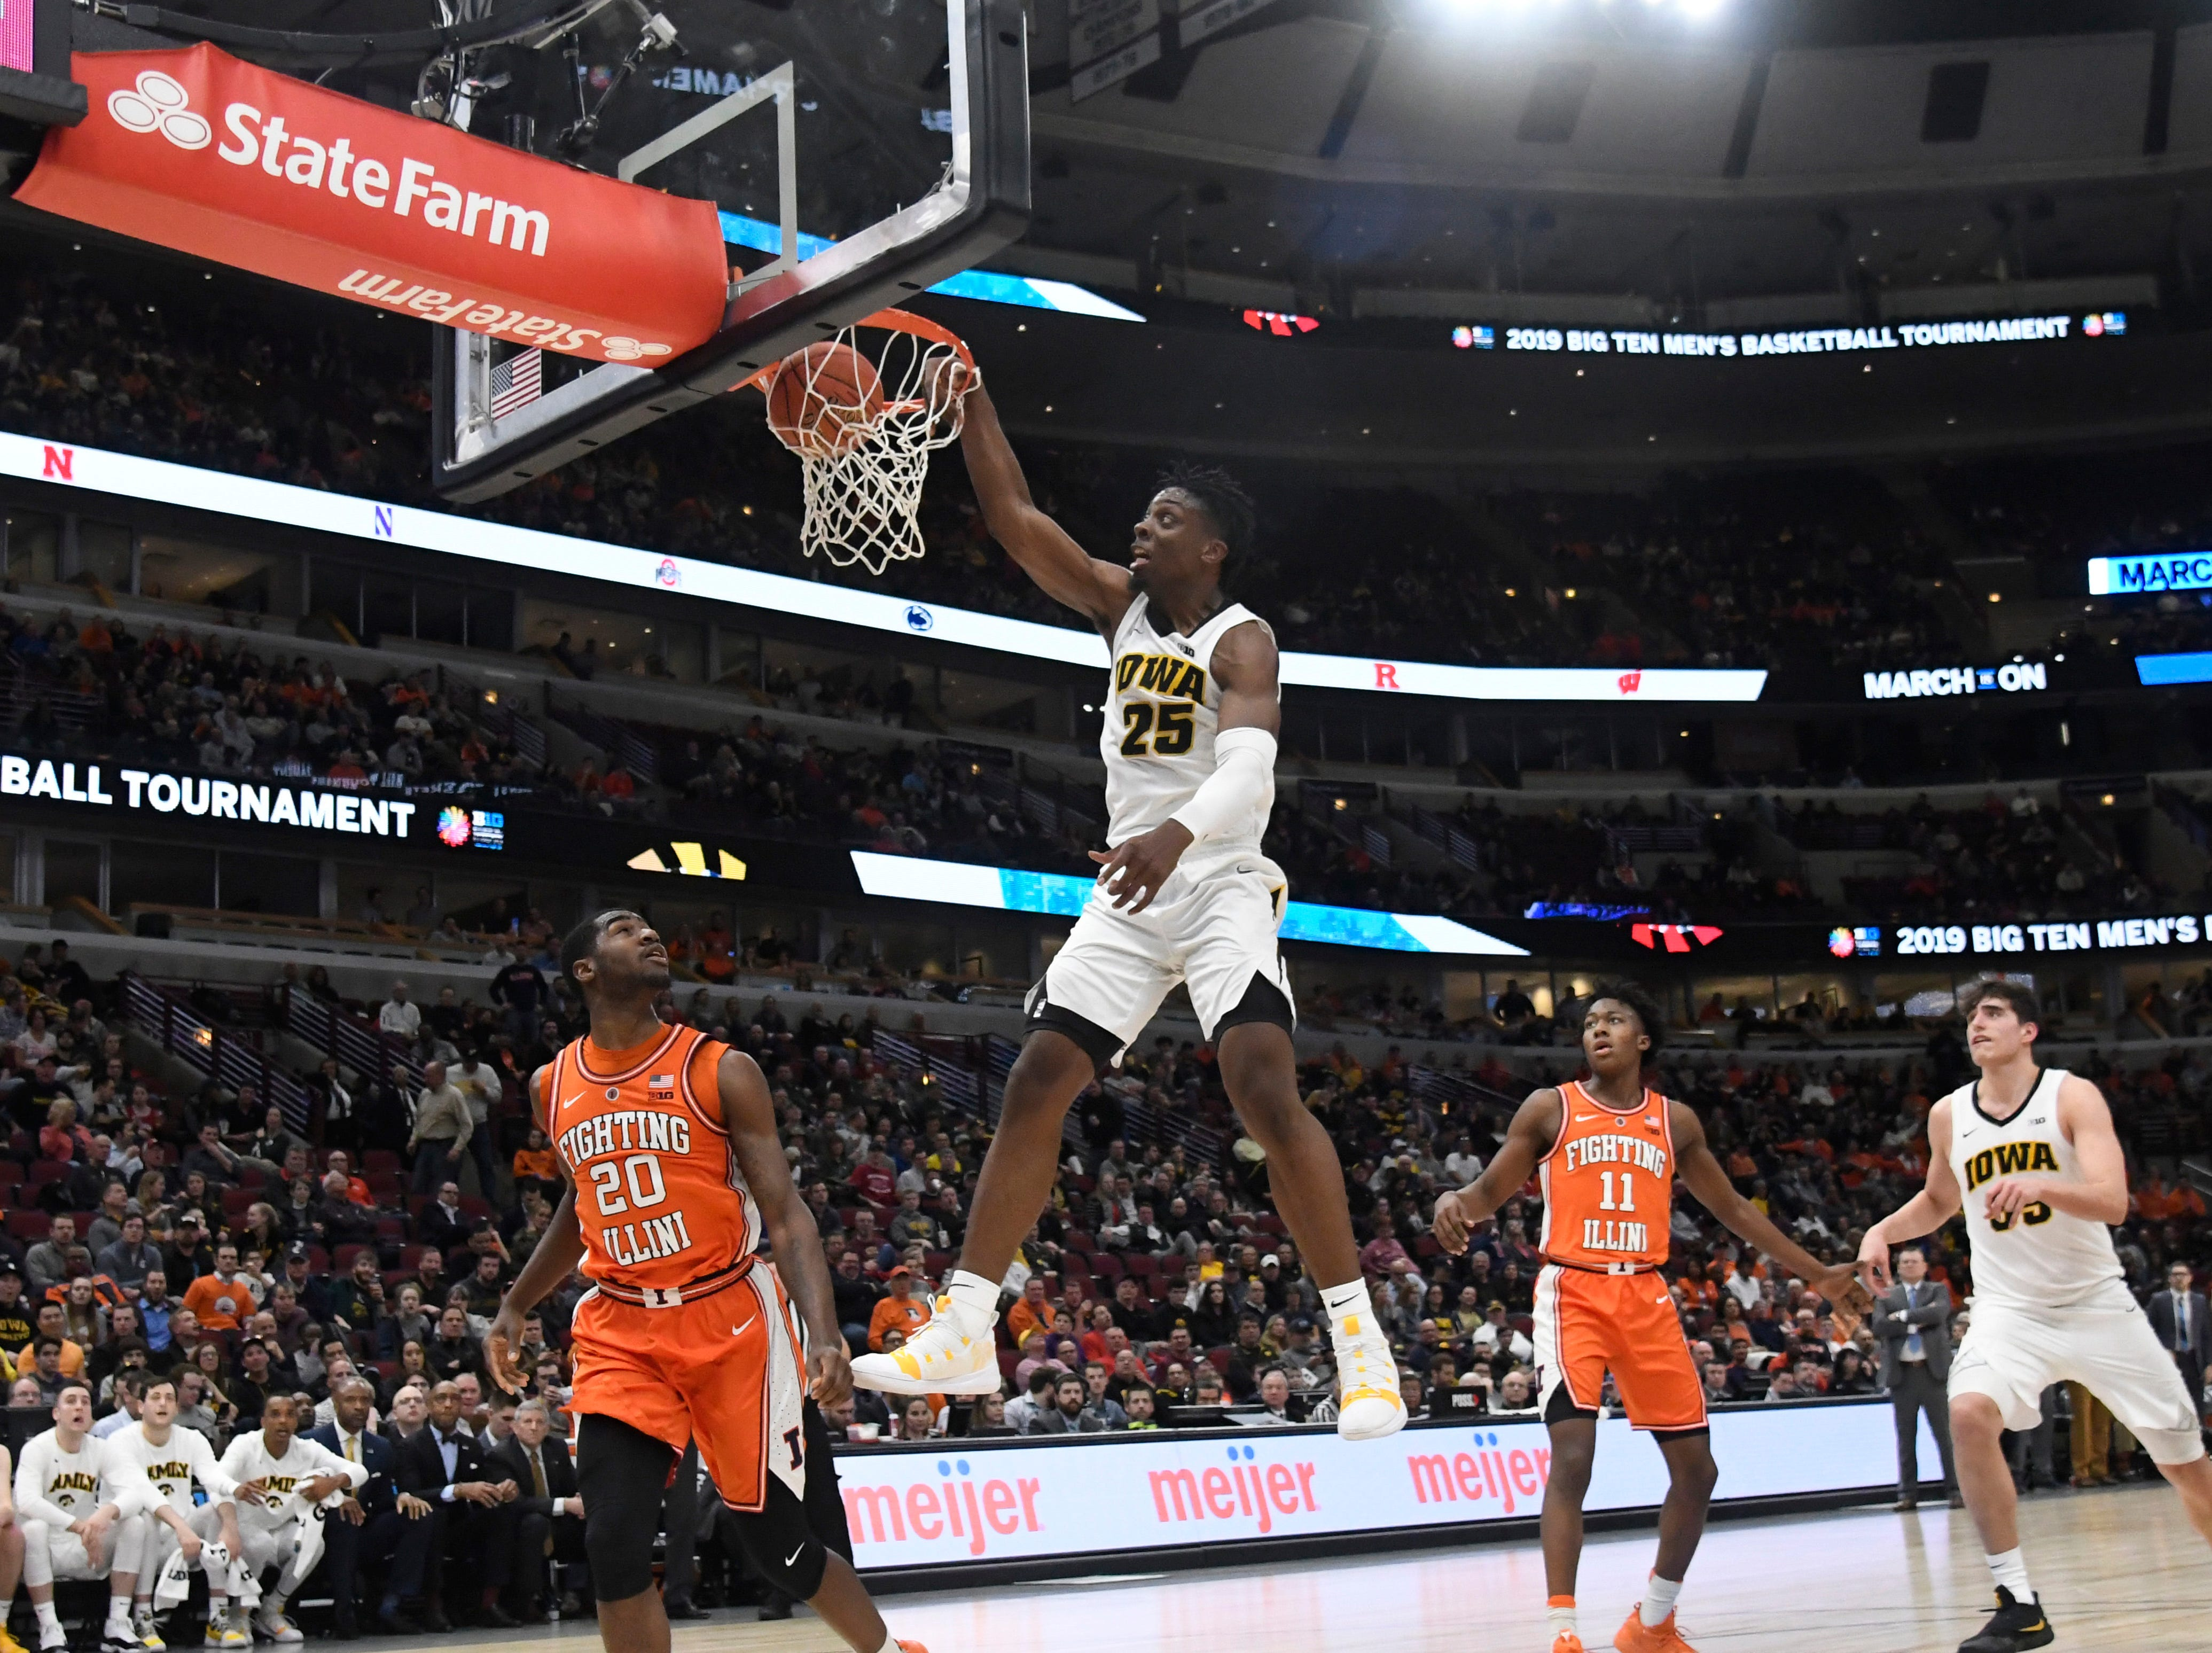 Mar 14, 2019; Chicago, IL, USA; Iowa Hawkeyes forward Tyler Cook (25) dunks the ball as Illinois Fighting Illini guard Da'Monte Williams (20) looks on during the second half in the Big Ten conference tournament at United Center. Mandatory Credit: David Banks-USA TODAY Sports